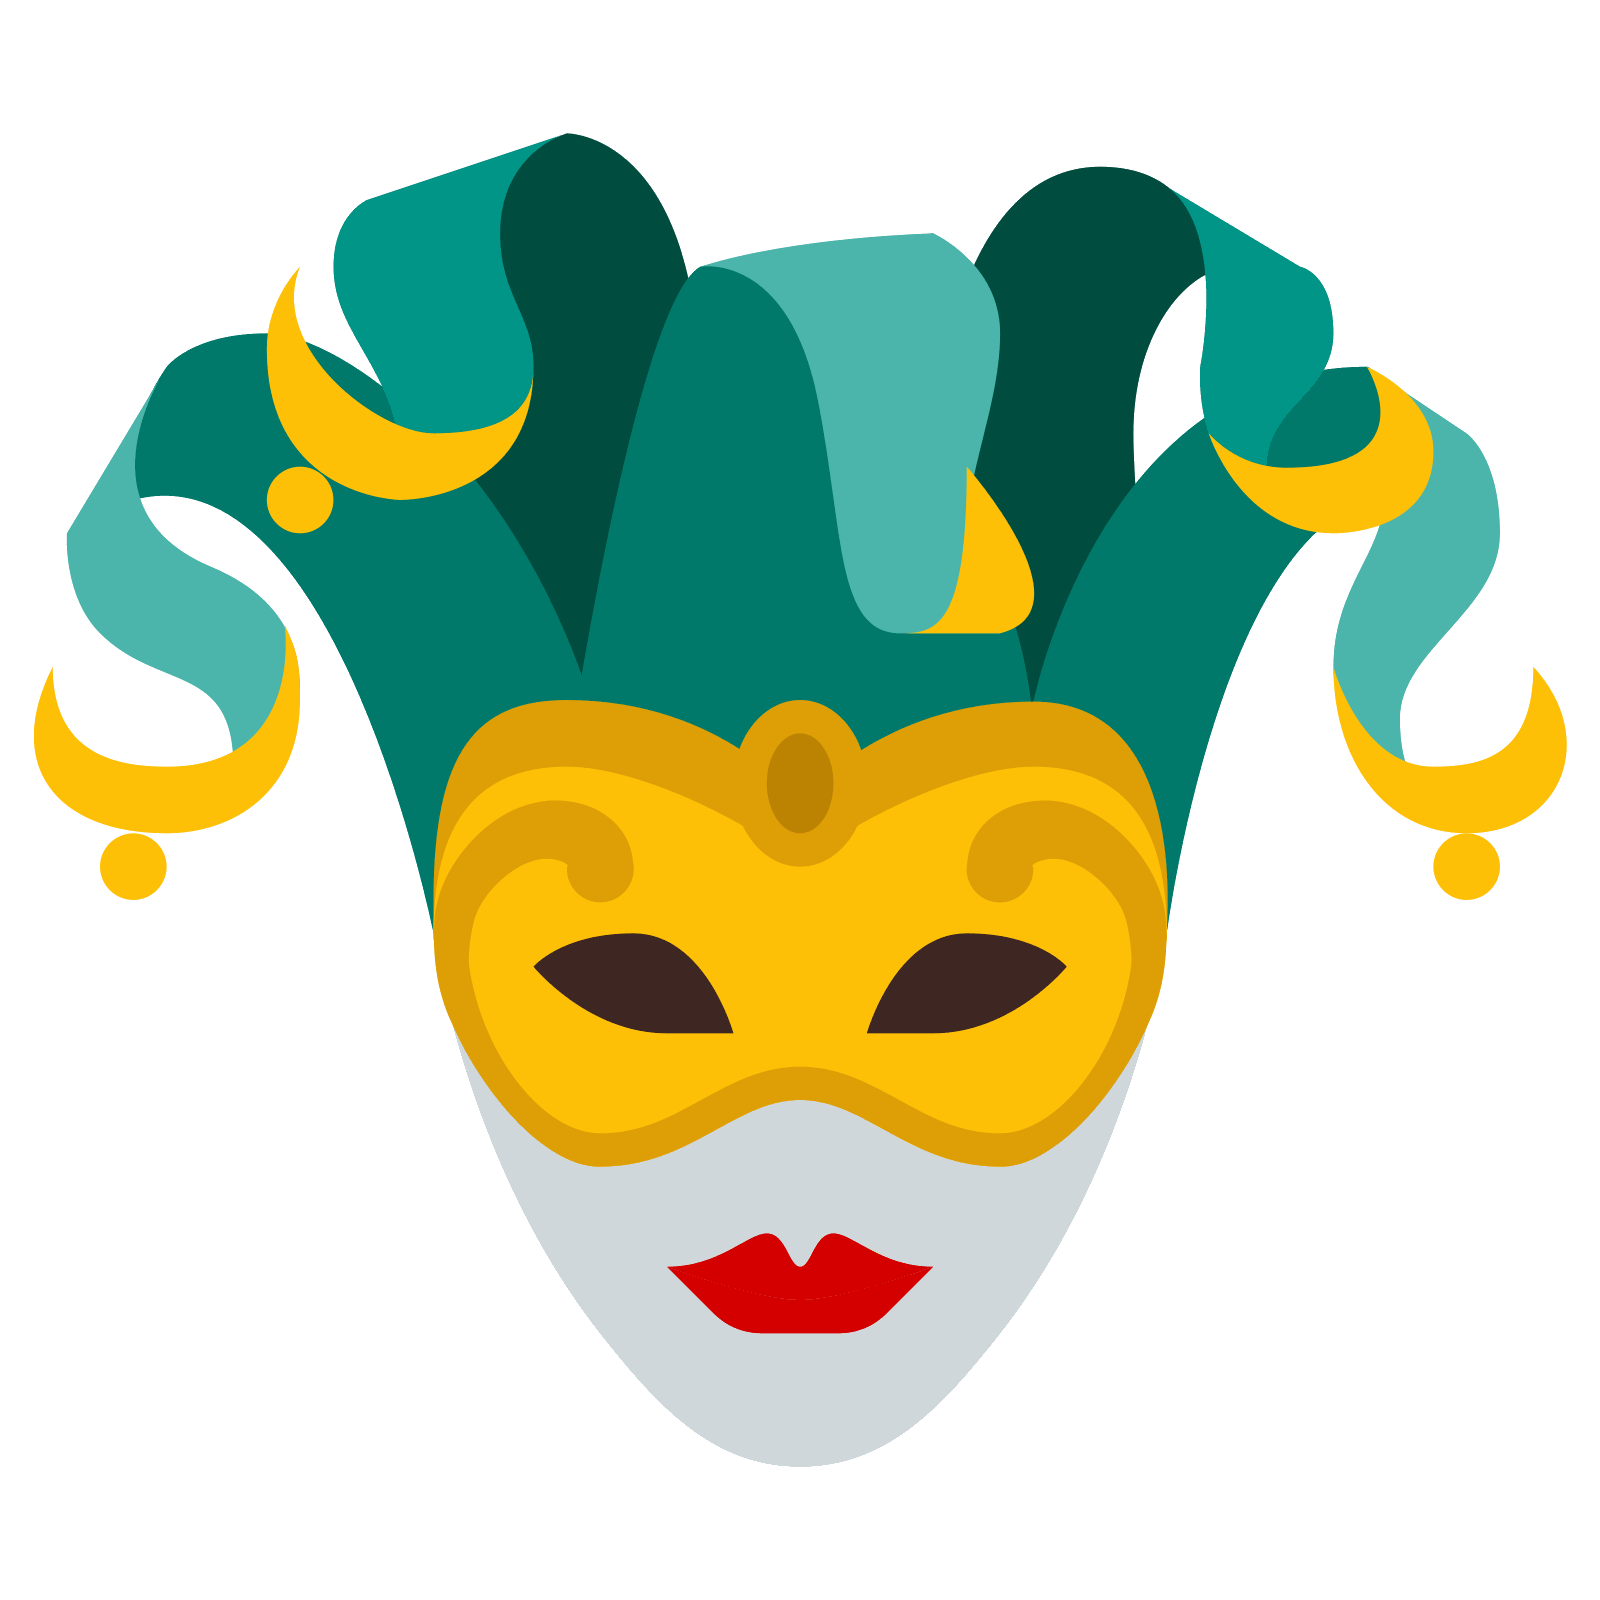 clipart download Venetian Mask Icon